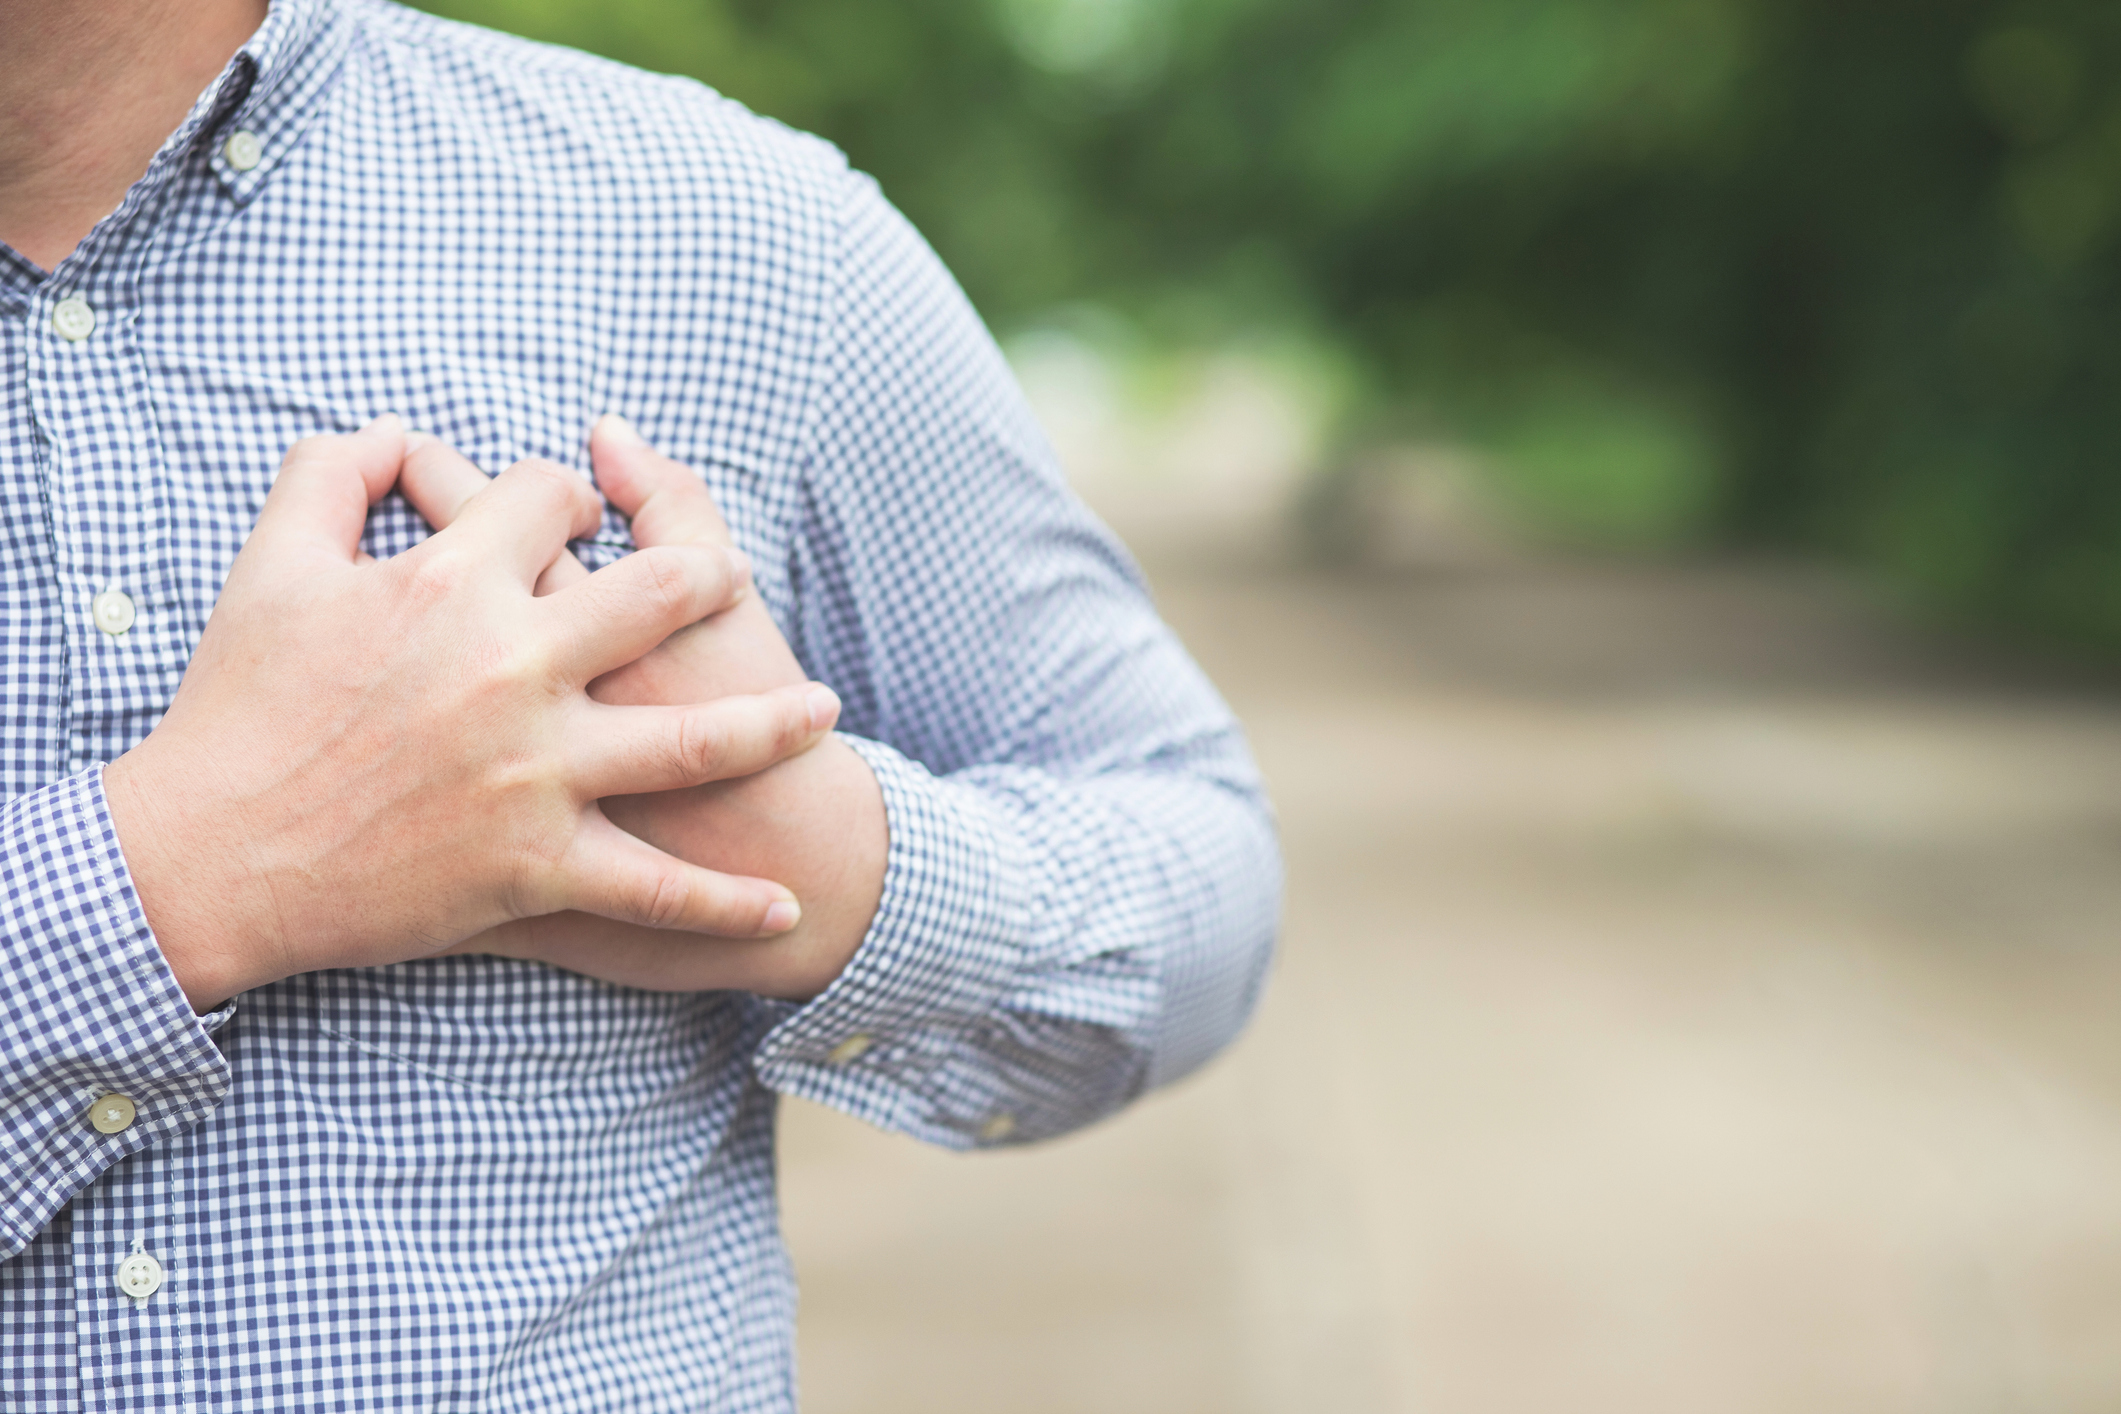 Missing link explains how heart disease can start in the gut